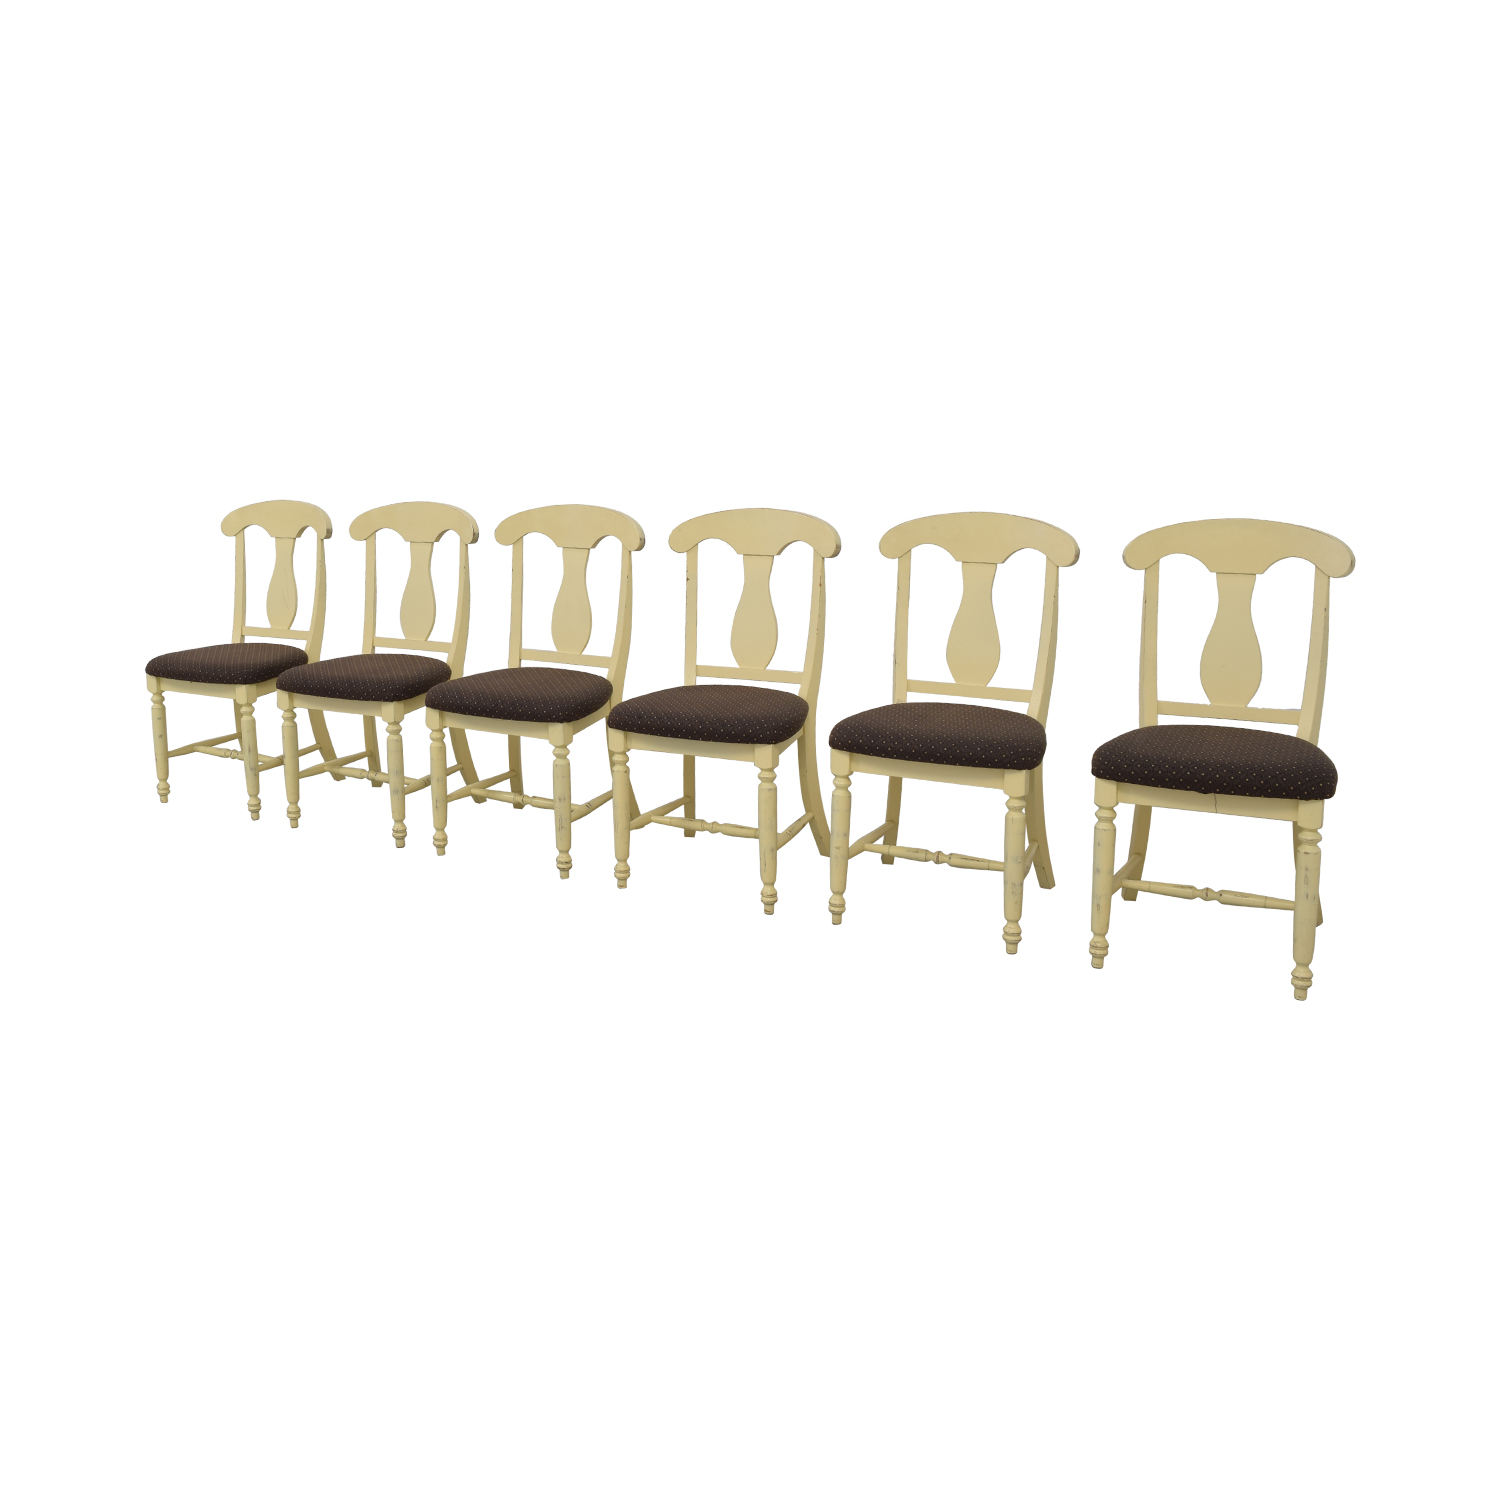 Canadel Furniture Upholstered Dining Chairs price